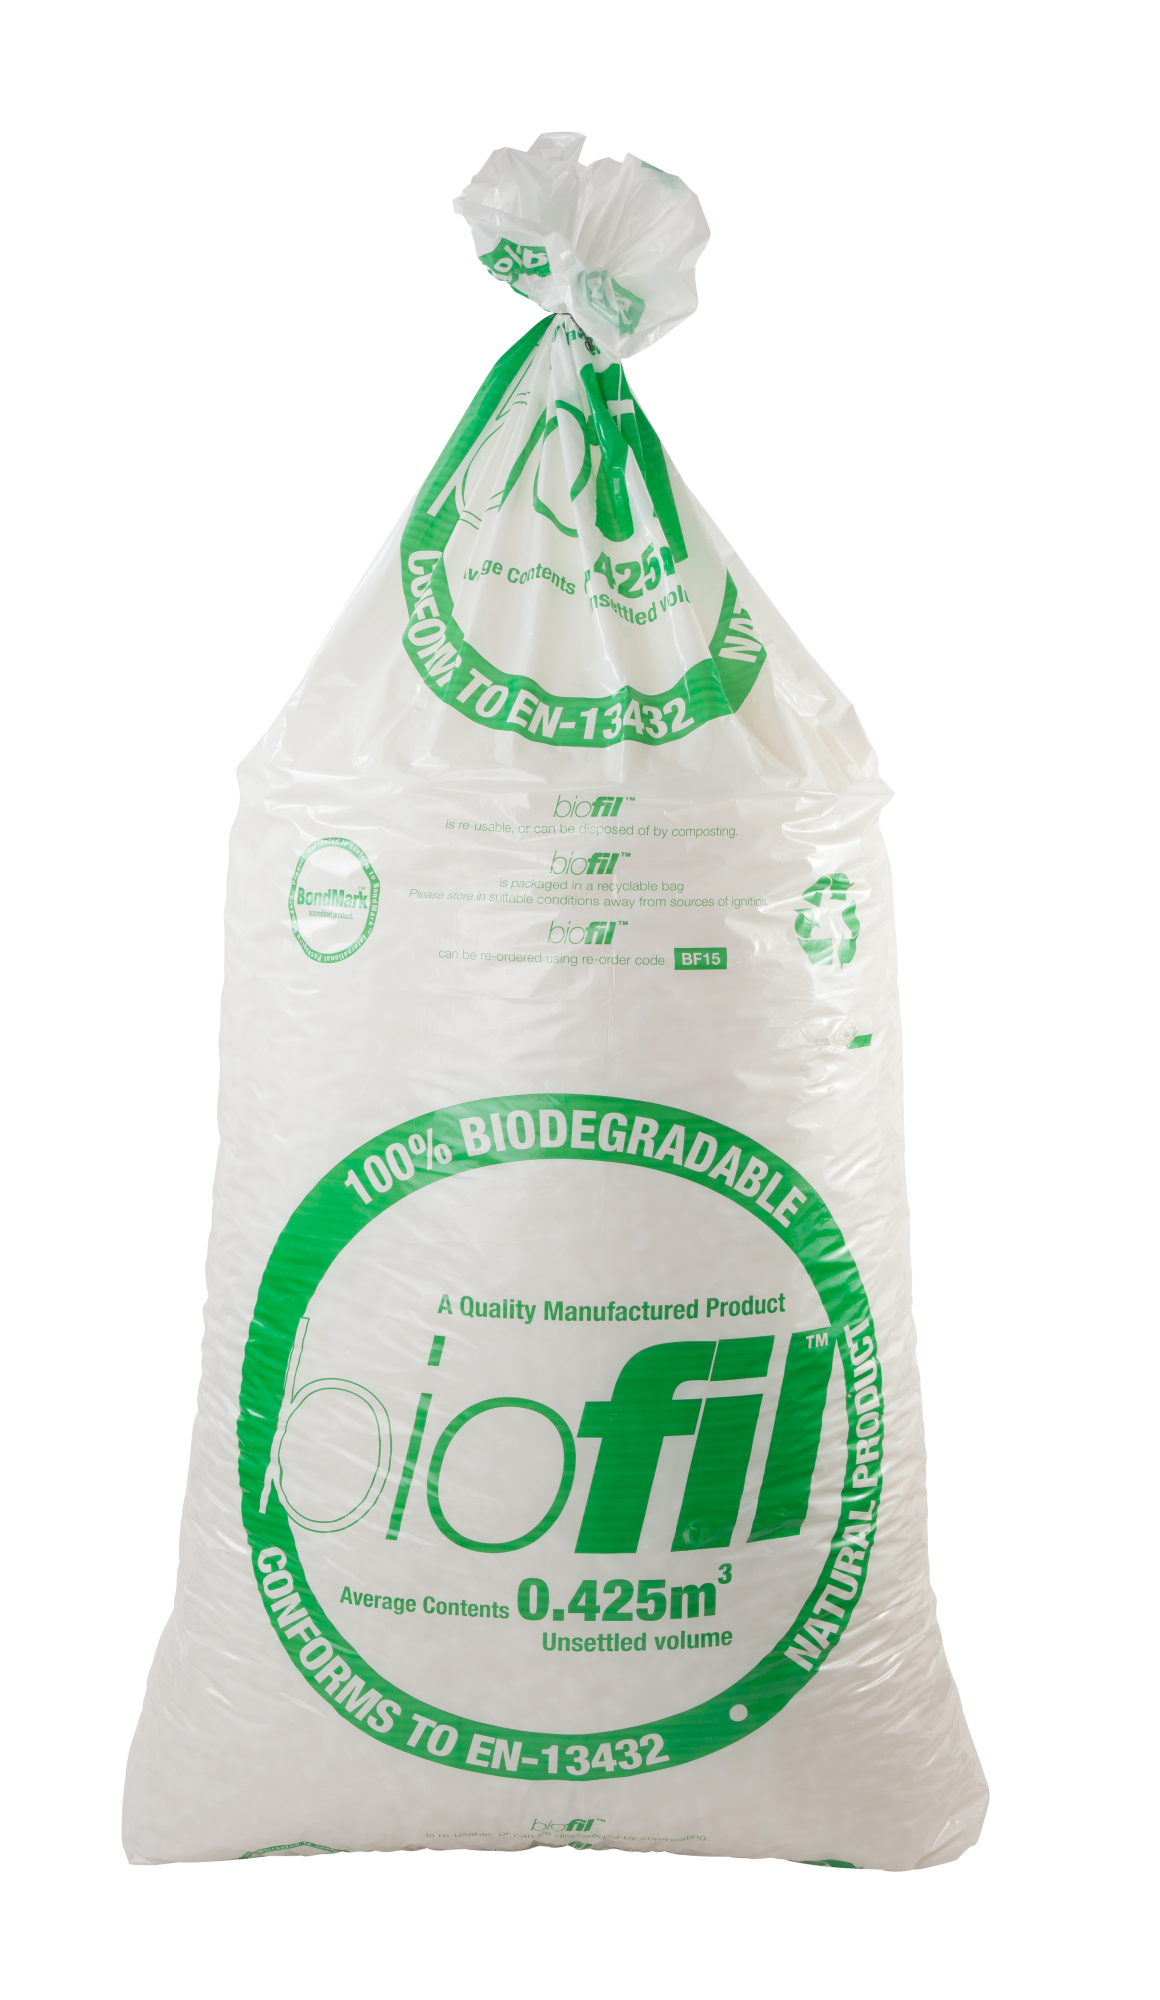 BIOFIL 15Cu ft Biodegradable Loosefill